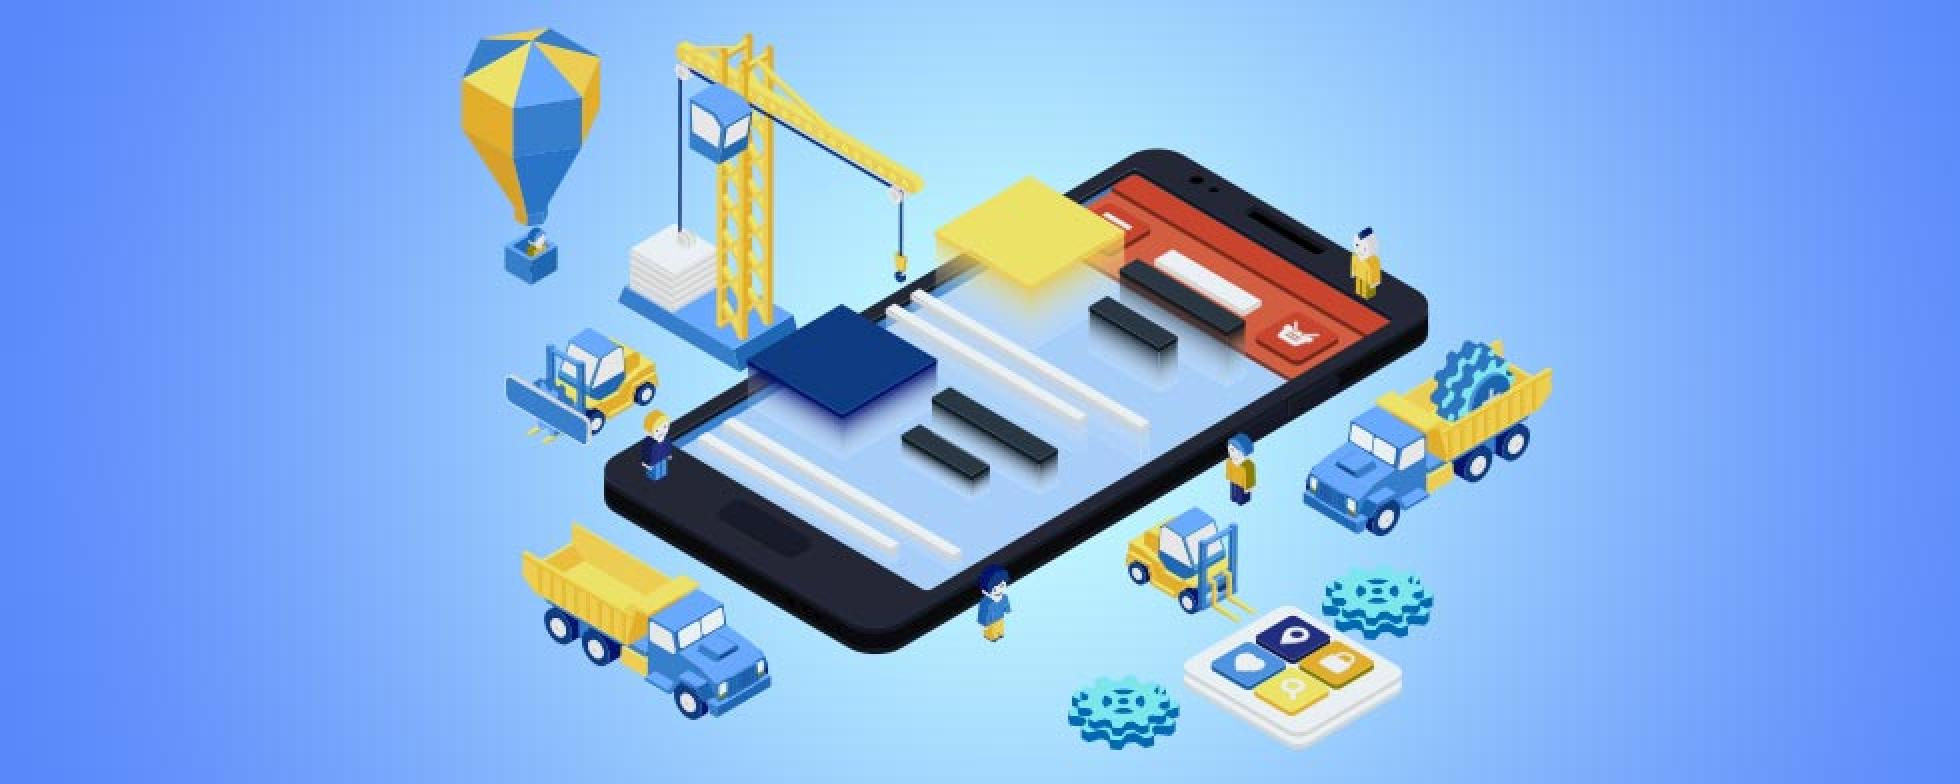 Illustration on building a mobile phone page